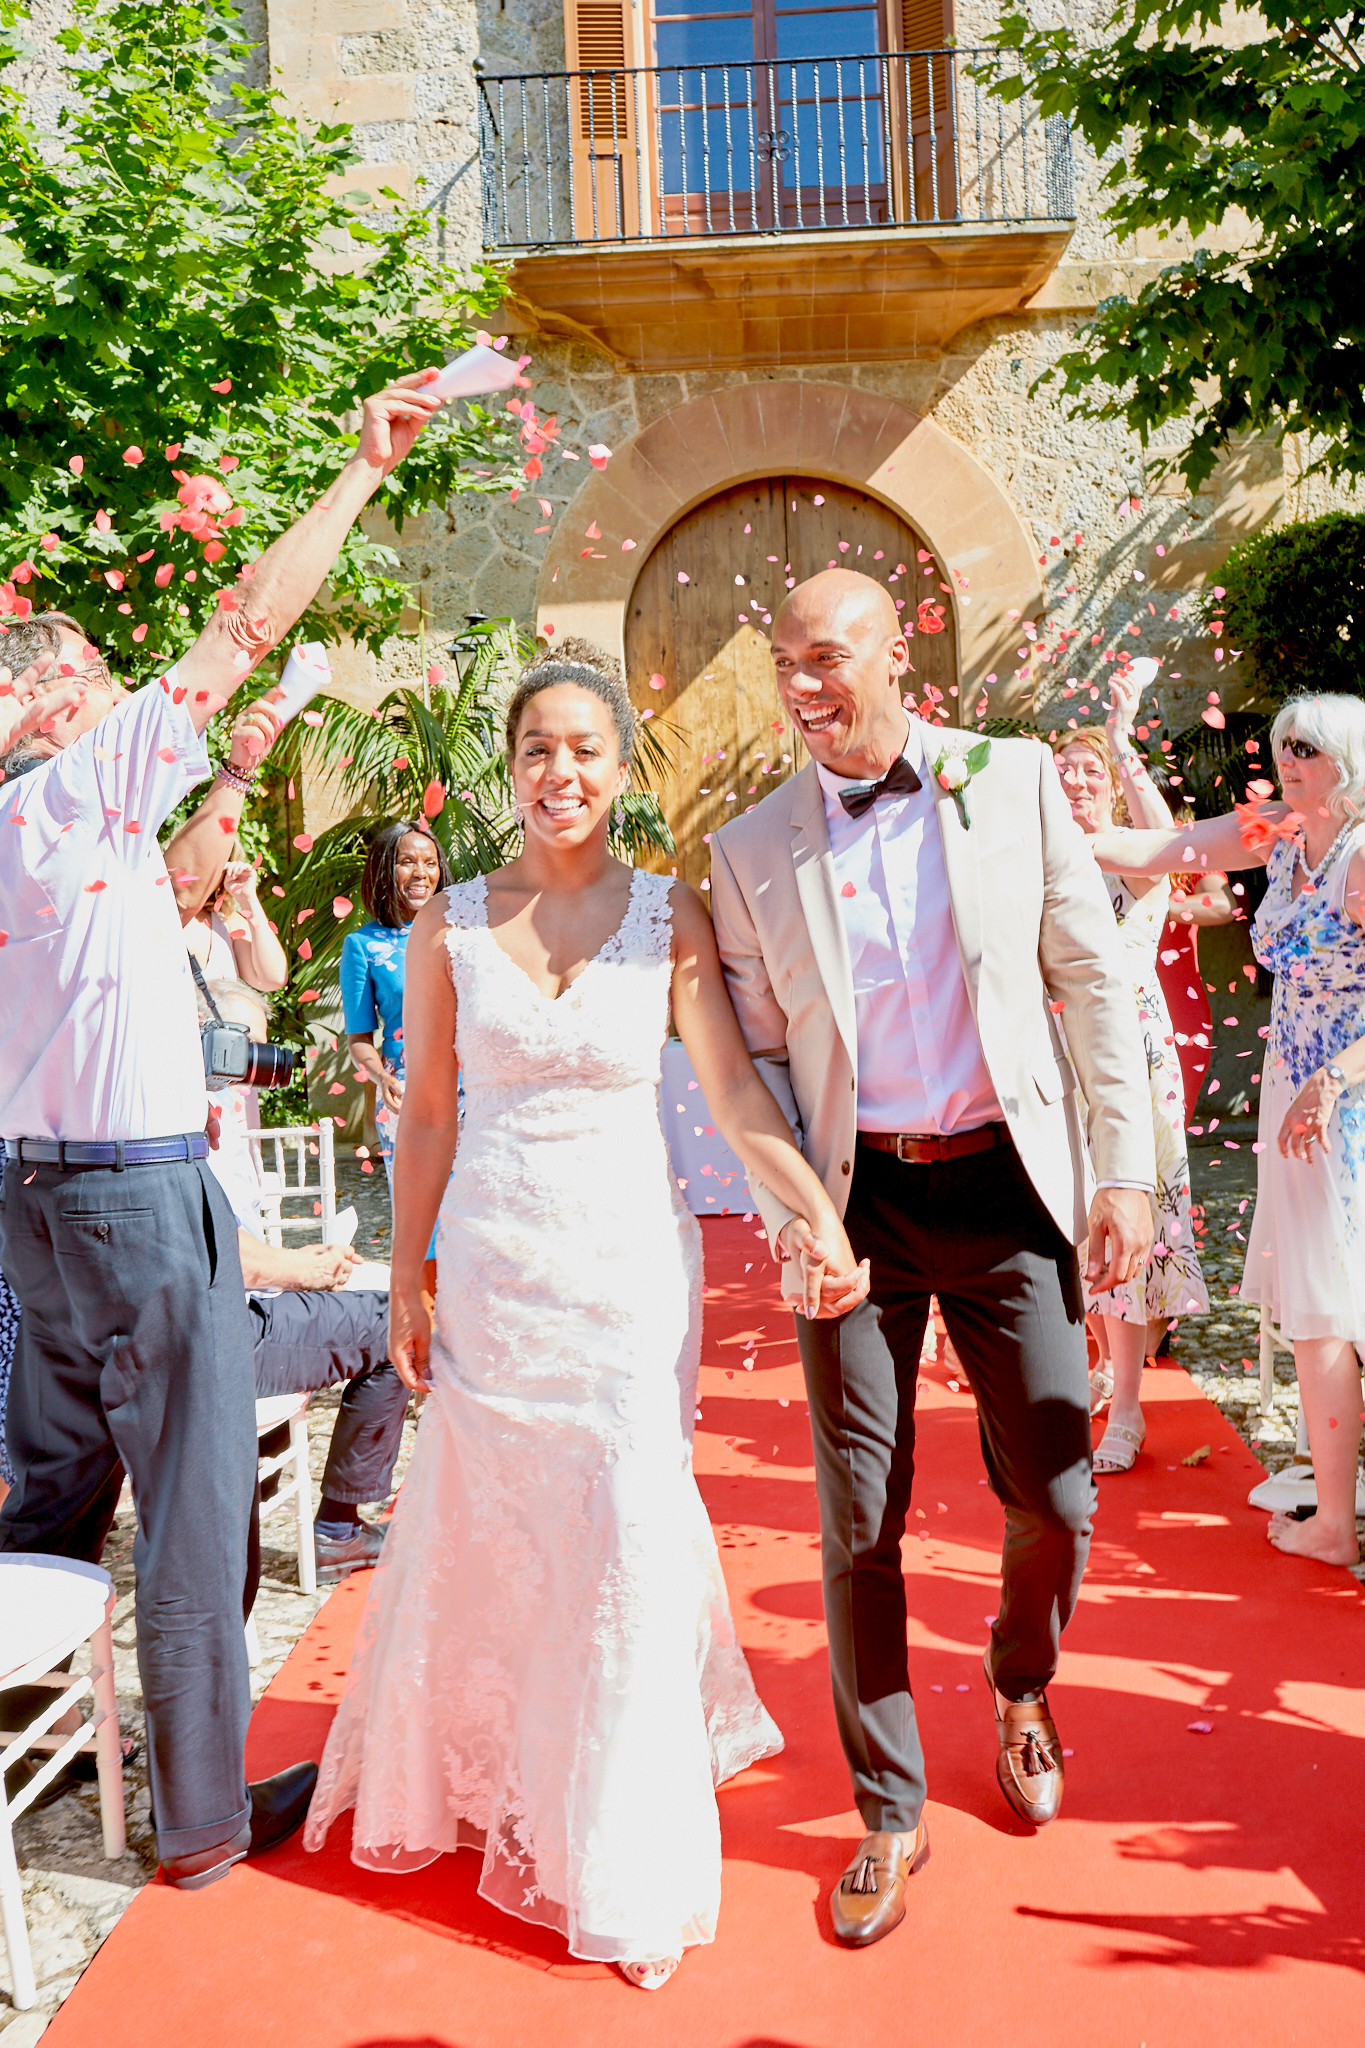 The newlyweds walk back down the aisle amidst a showering of confetti from family and friends, Thad Medford Photography